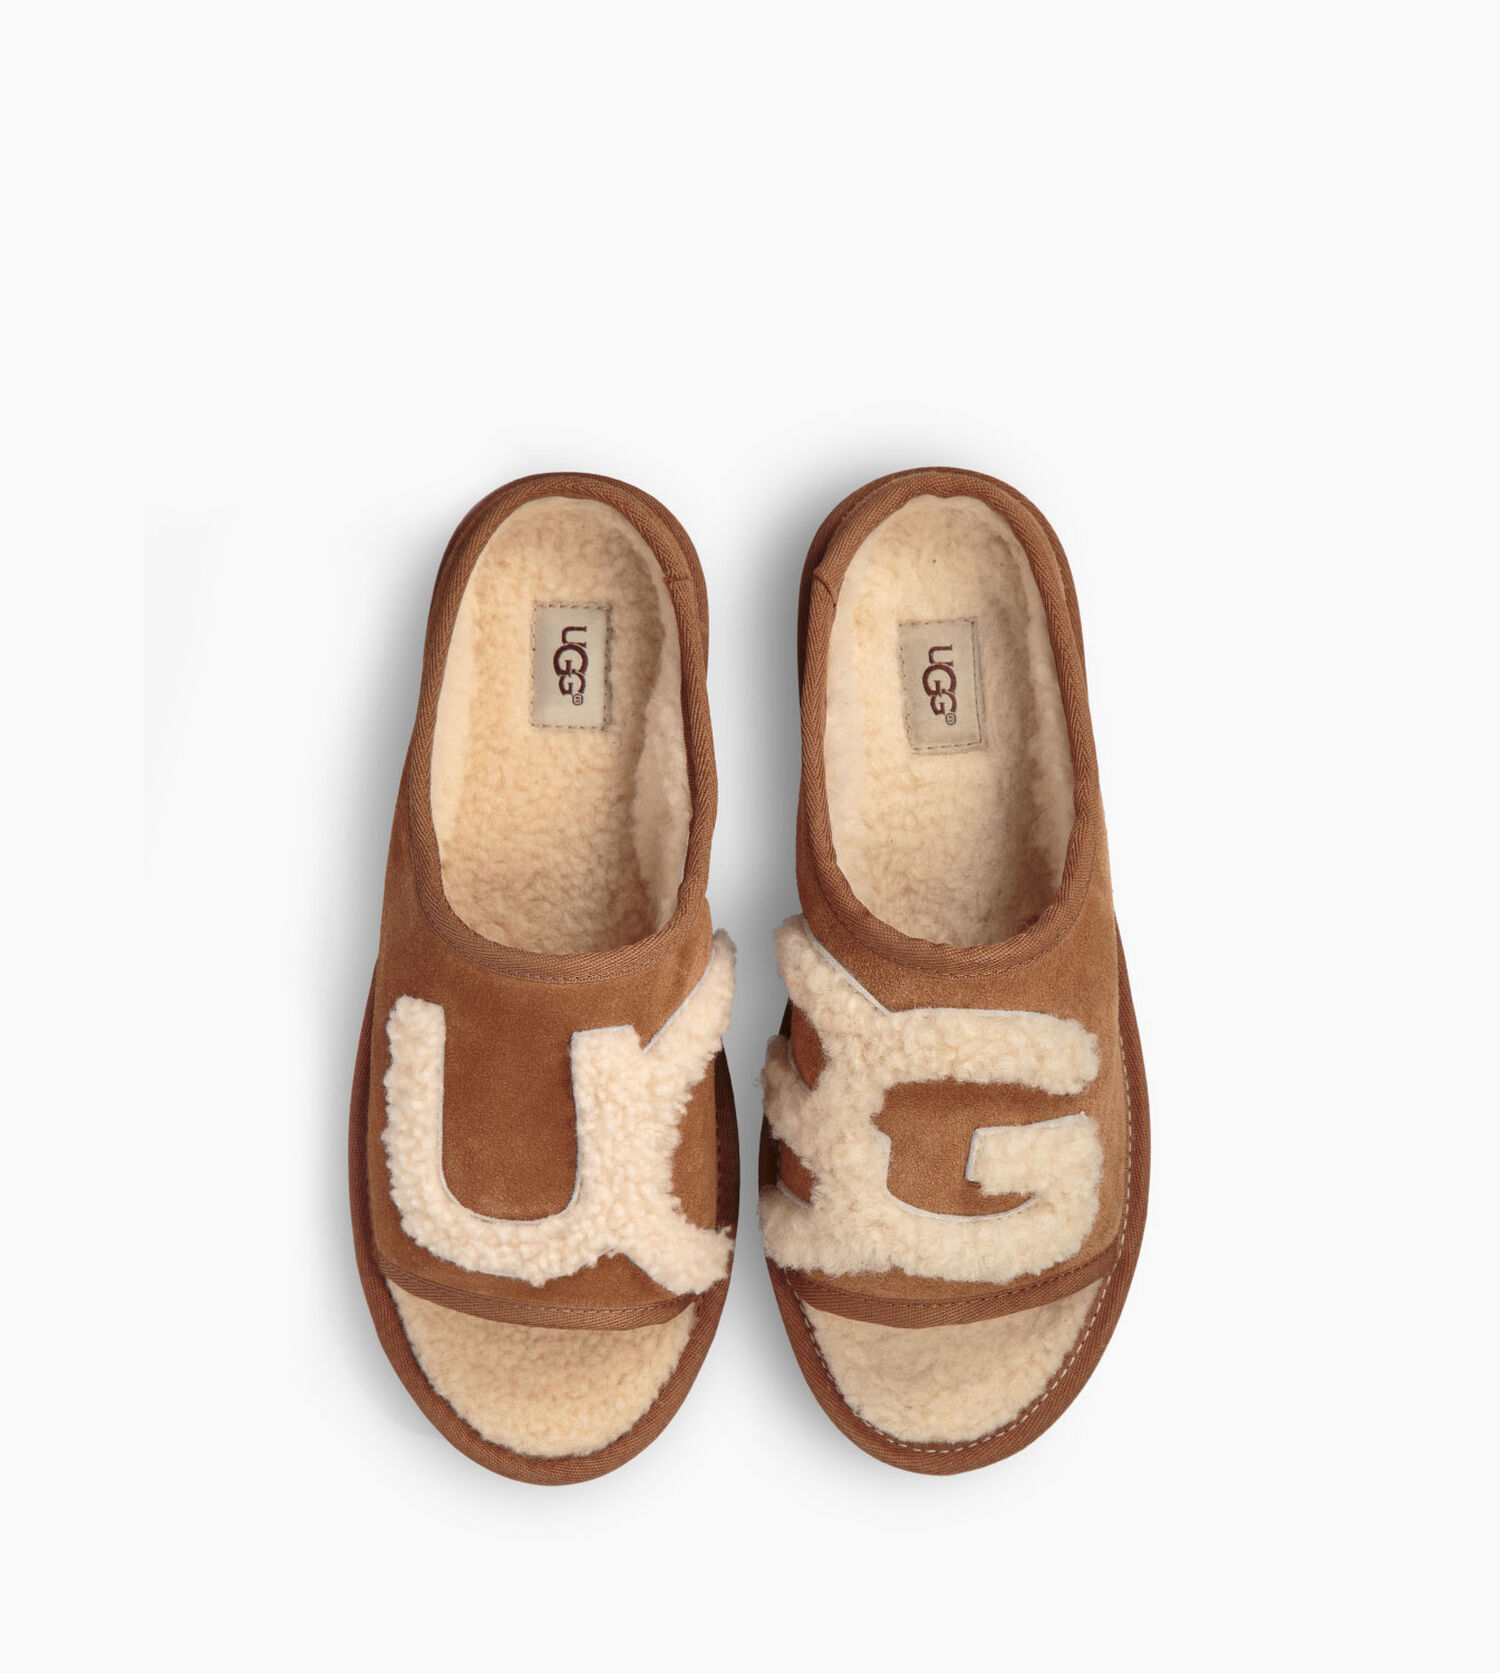 ugg bedroom slippers. UGG Slide  Official Women s Slippers Collection Free Shipping